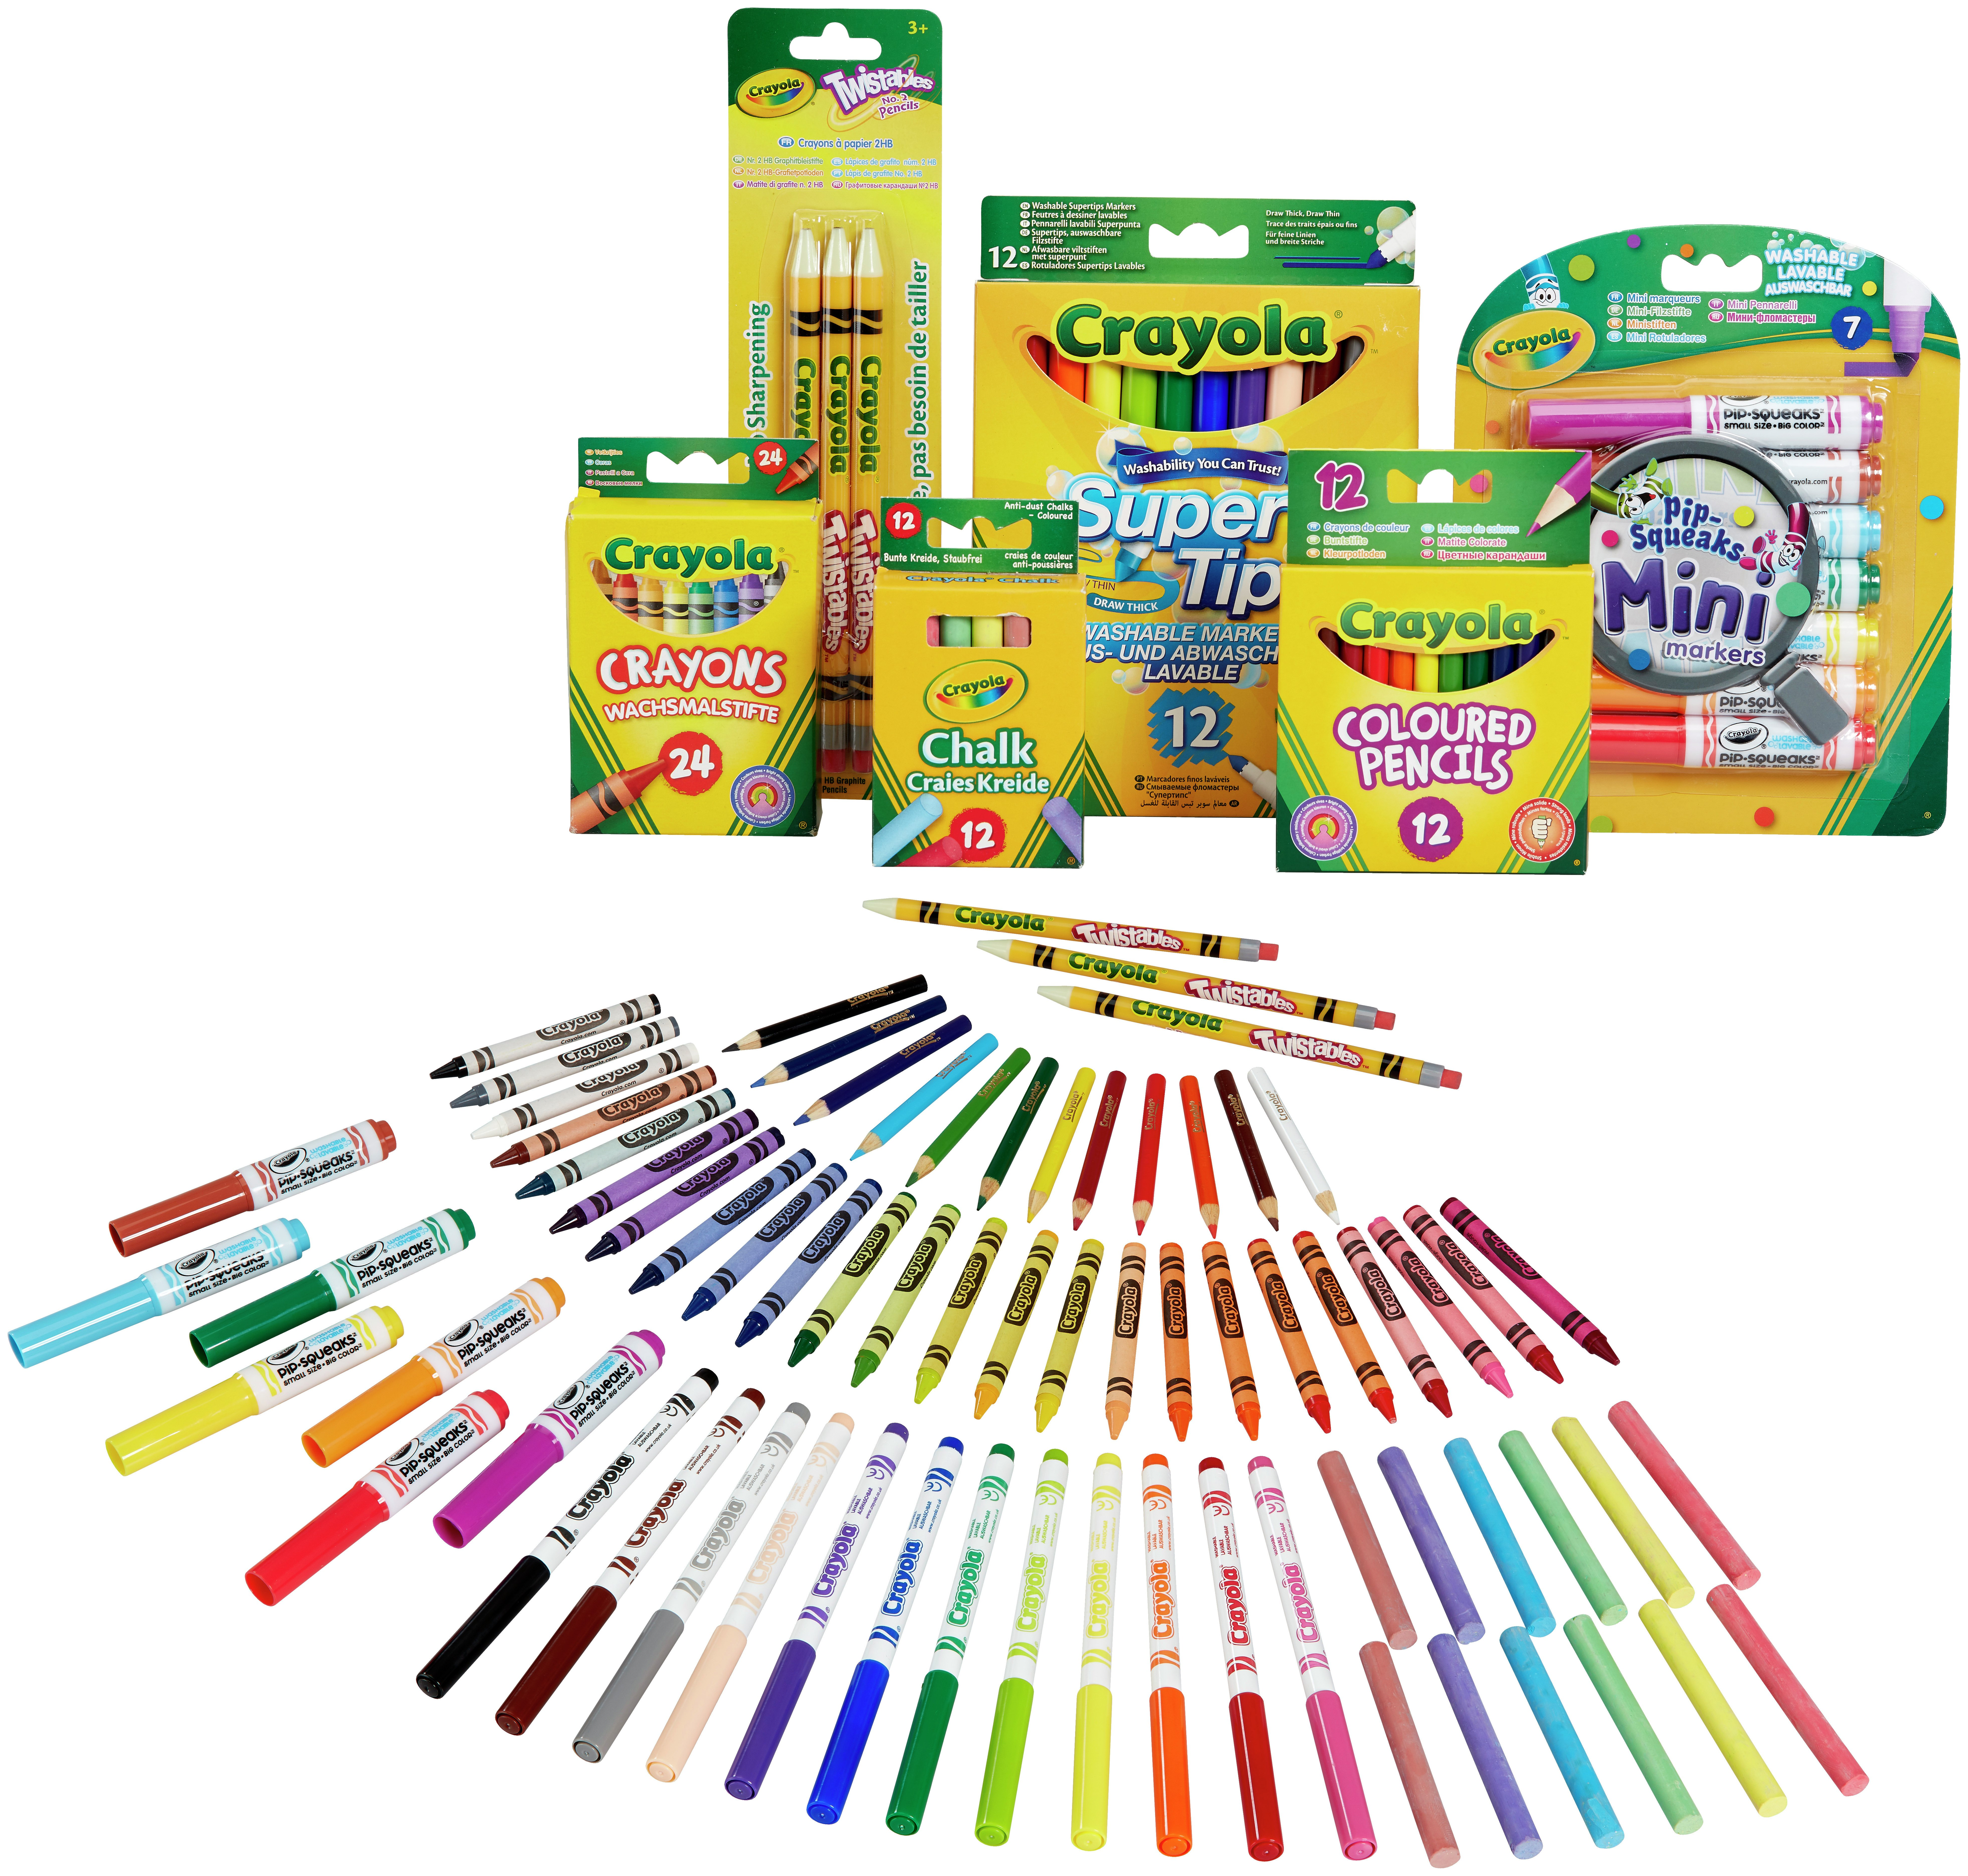 crayola-74-piece-stationery-set